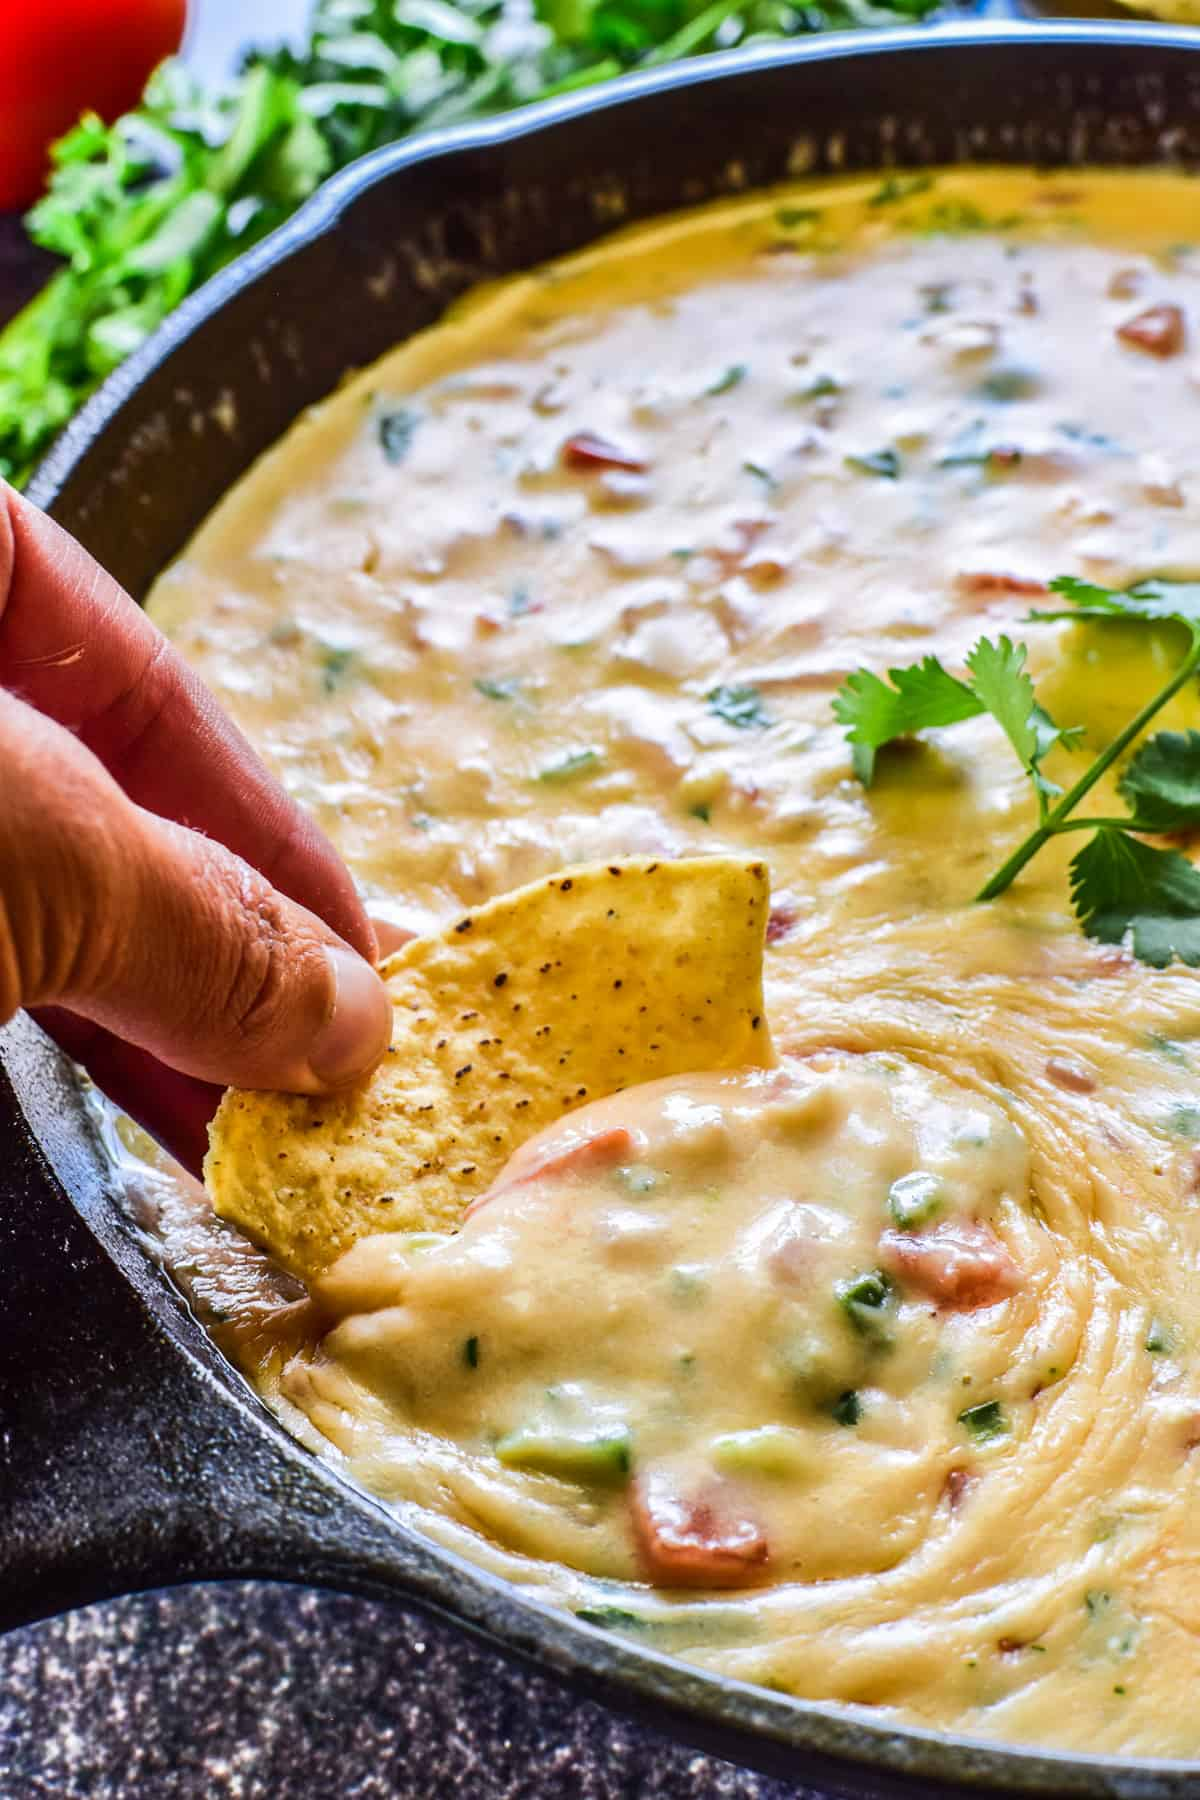 Tortilla chip being dipped into Queso